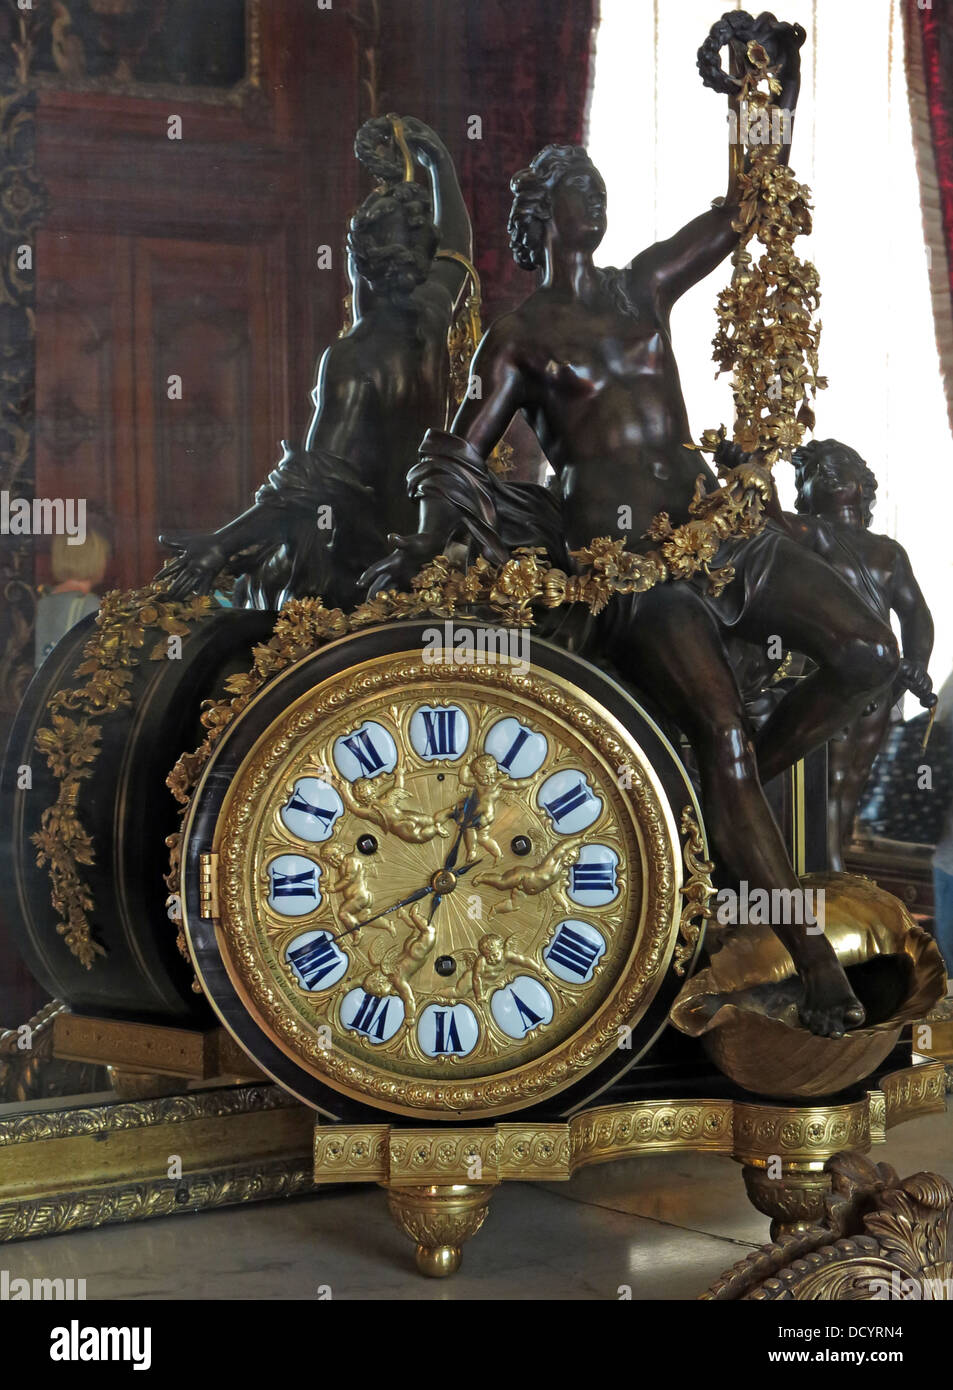 English,British,stately,homes,houses,national,trust,tourist,tourism,travel,class,system,upper,twit,Rothschild,Rothschilds,French,style,gold,clock,with,black,bronze,statue,18th,19th,century,time,piece,pieces,timepiece,timepieces,french,france,Gotonysmith Waddesdon Manor,Bicester Rd,Aylesbury,Buckinghamshire,England,UK HP18 0JH hp180jh,Buy Pictures of,Buy Images Of